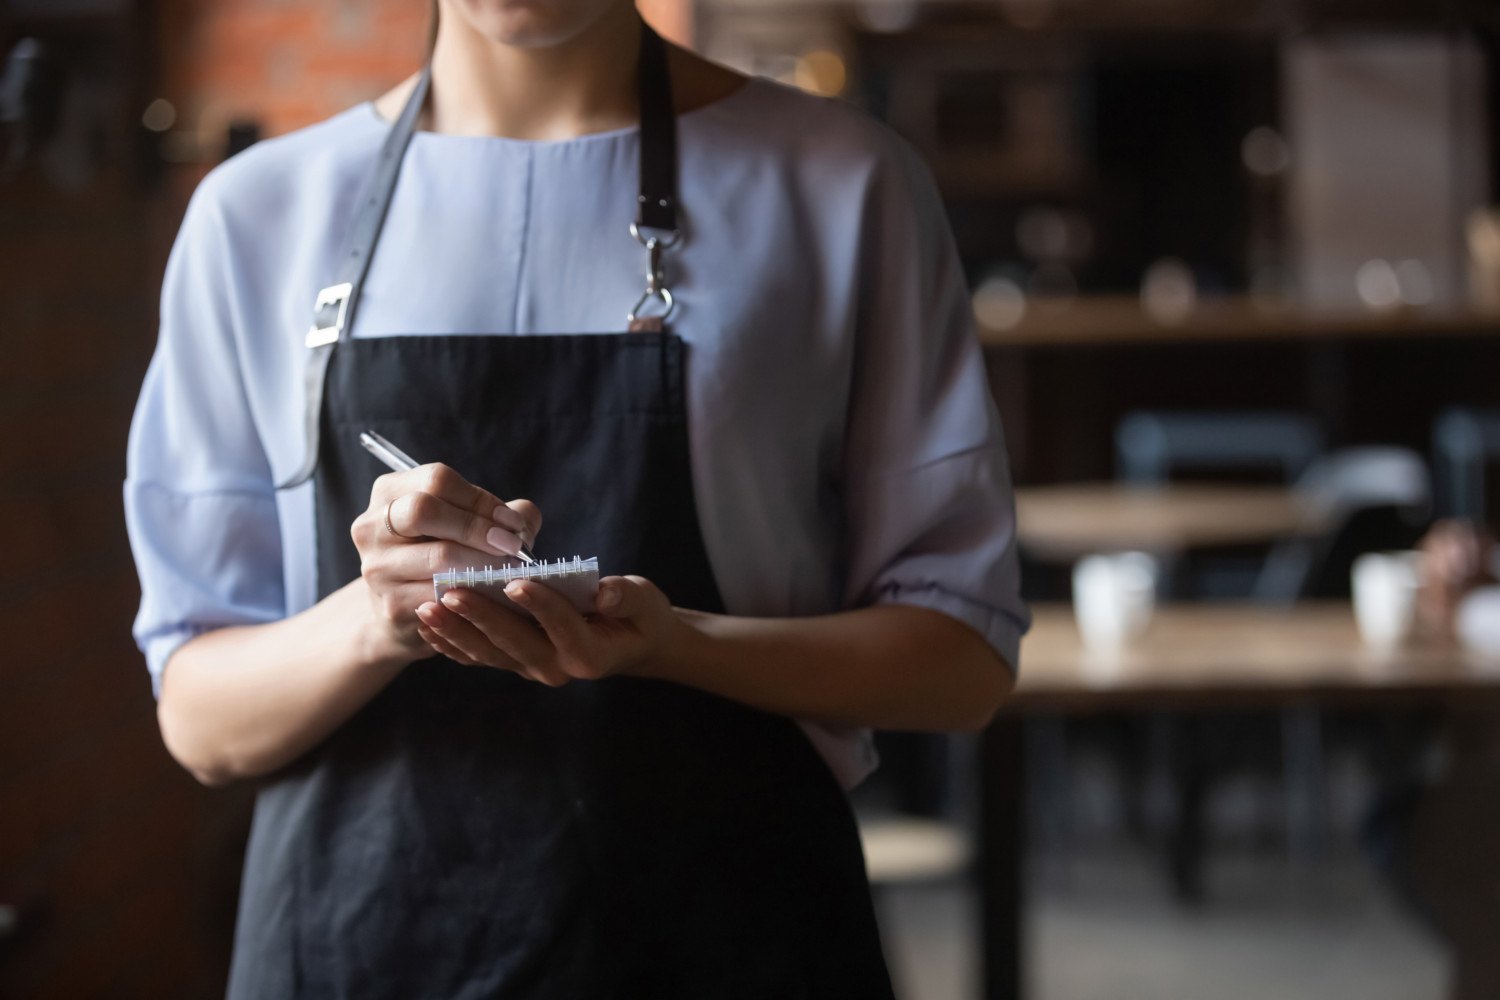 waitress wearing black apron standing with notepad in hand